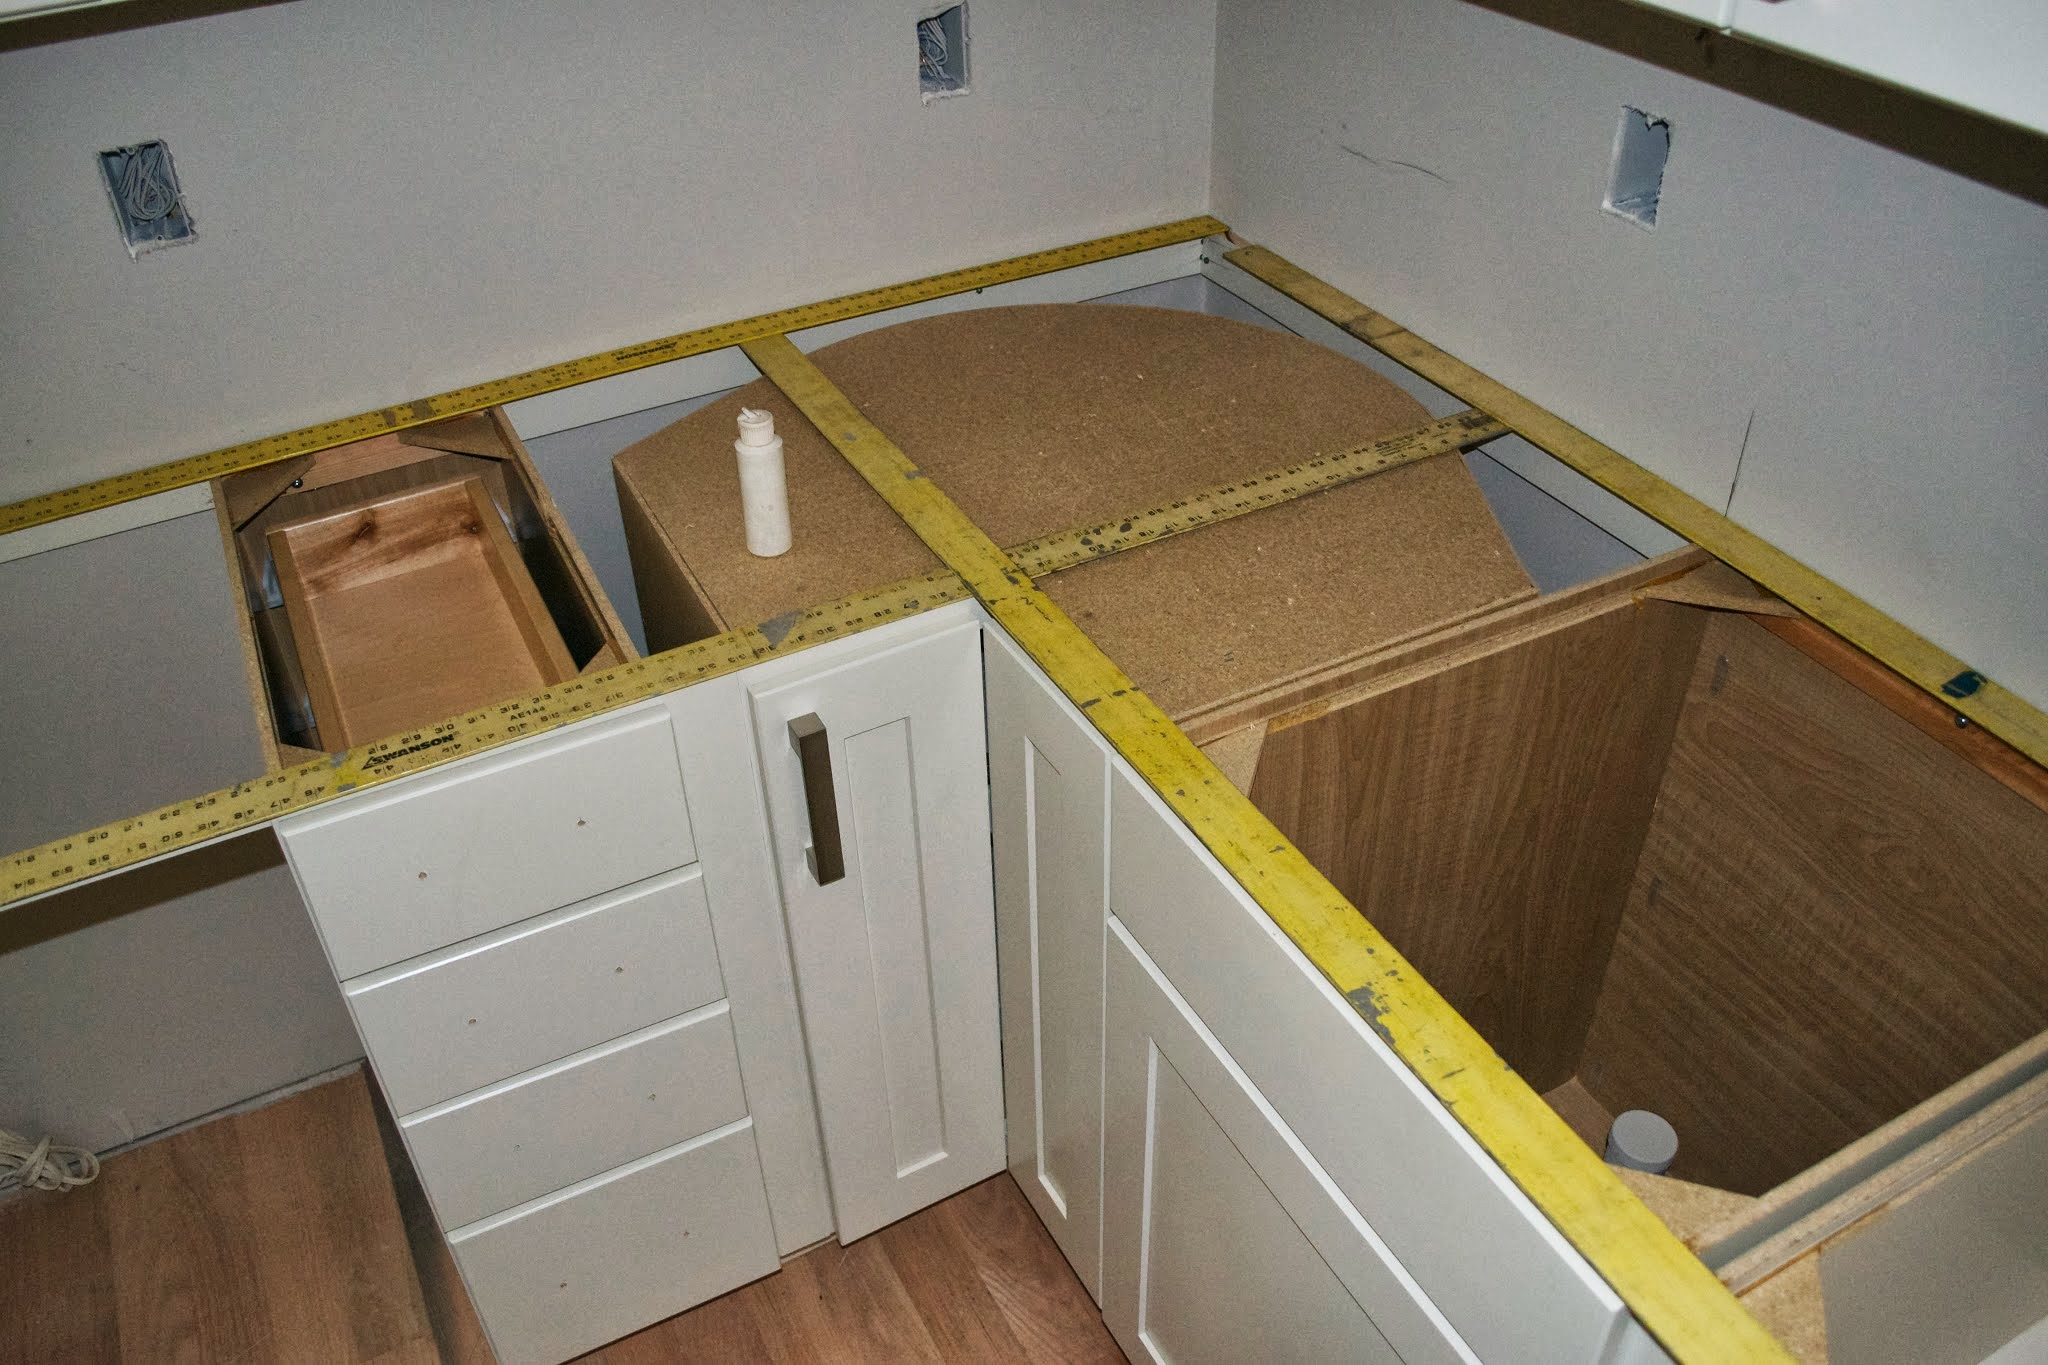 How to create a countertop template pro construction guide for Como hacer gabinetes de cocina